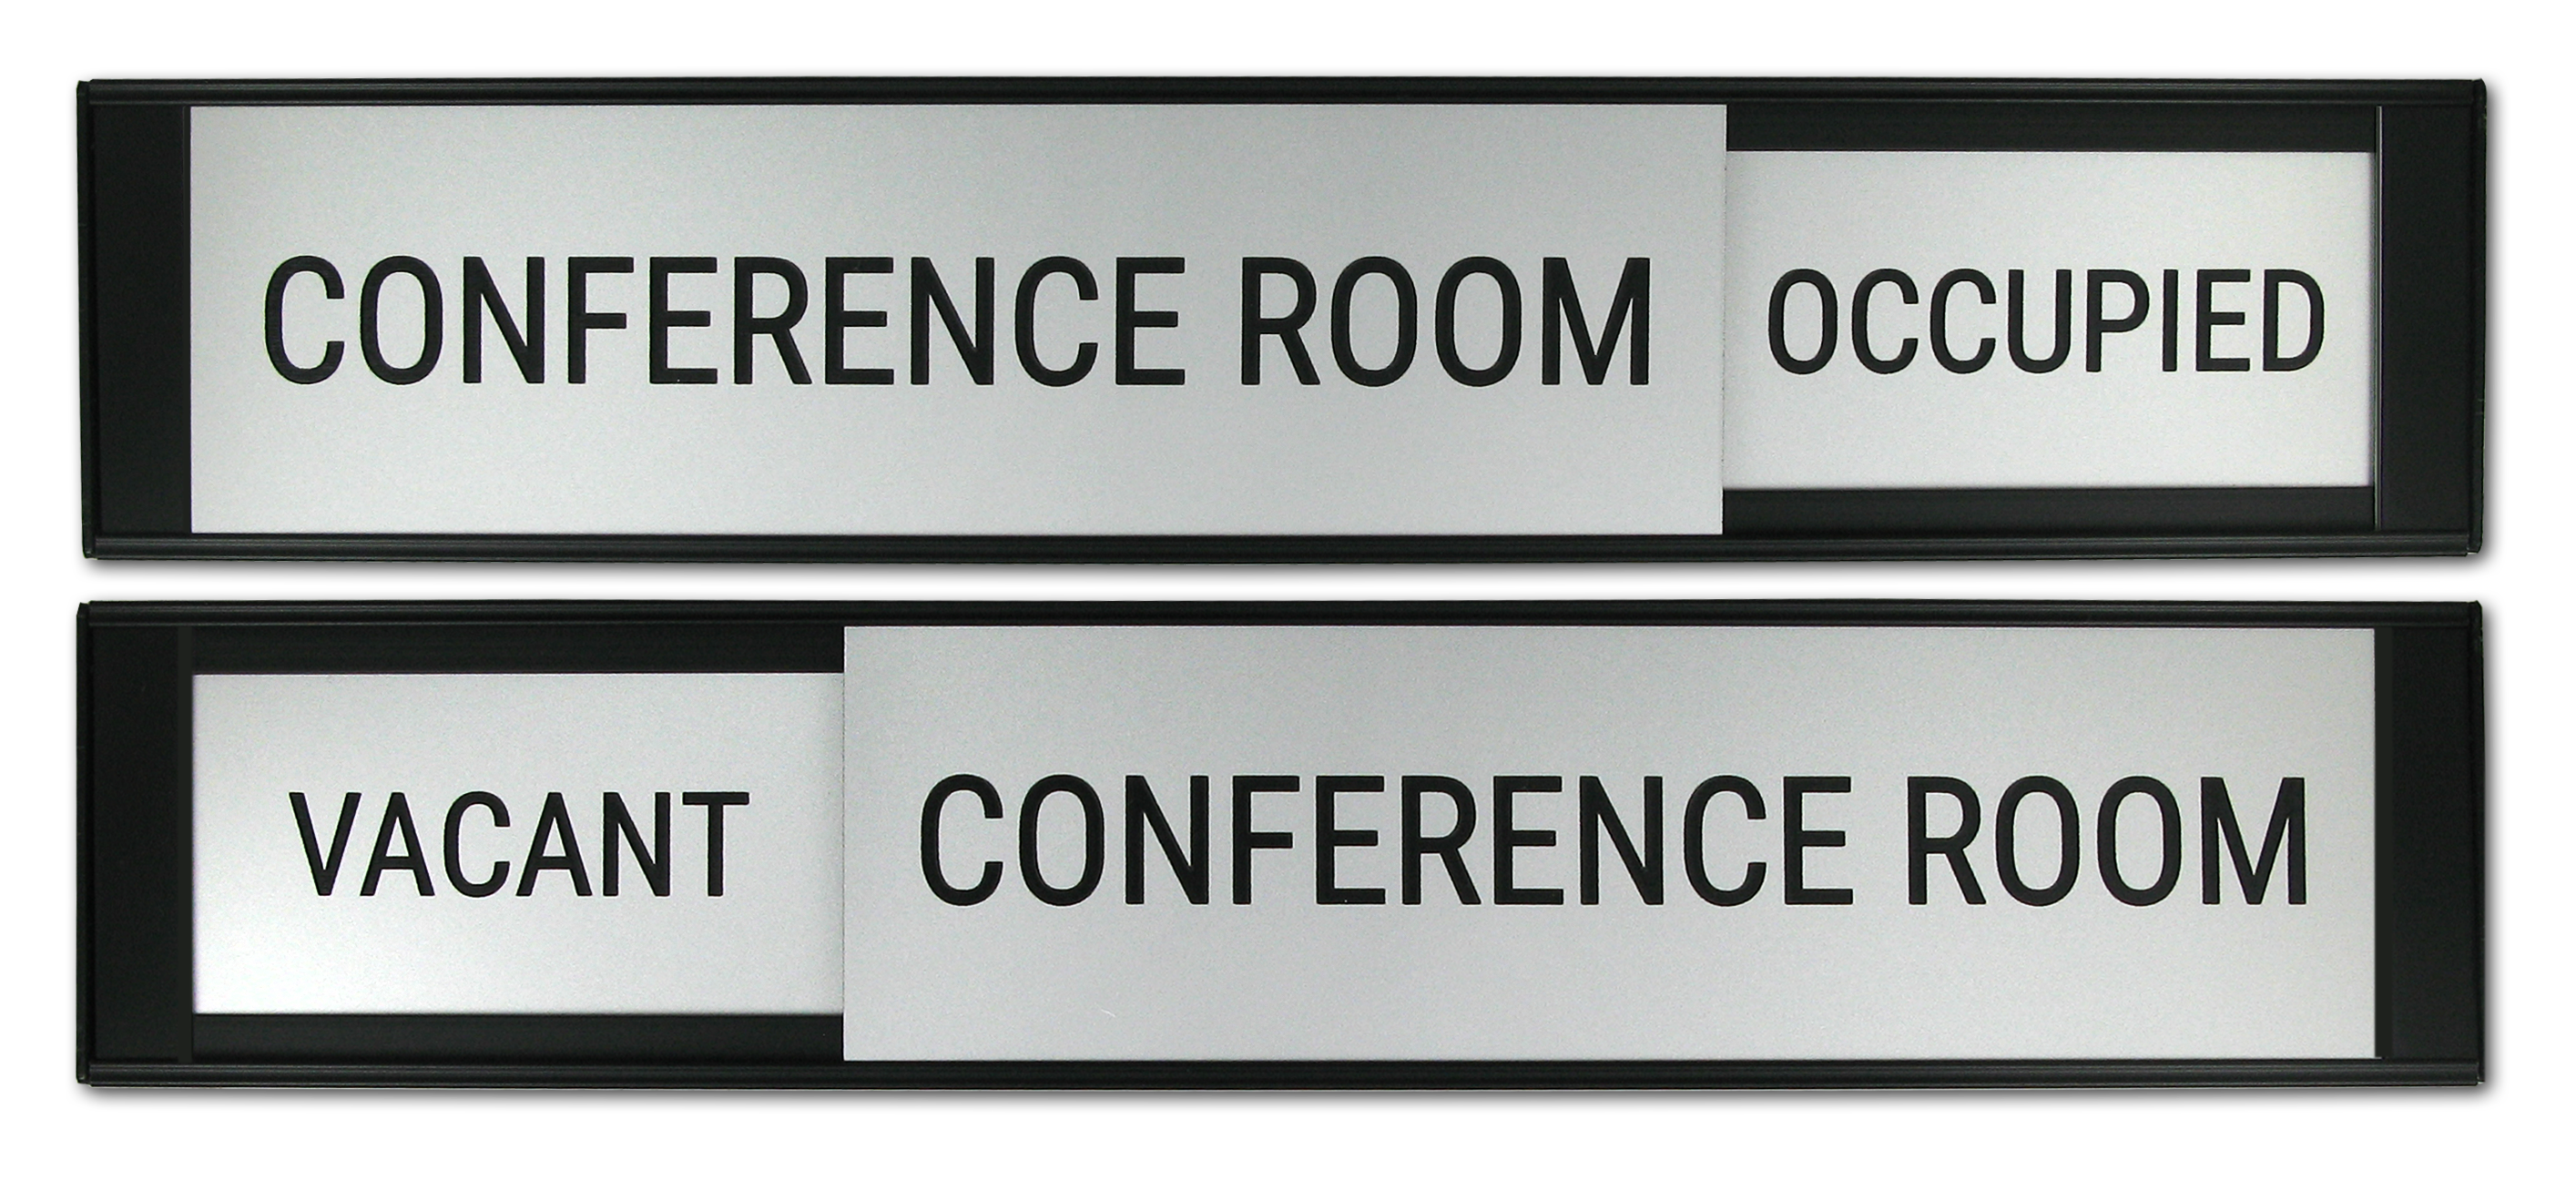 Conference & Meeting Room Door Signs. Conference Room Sign